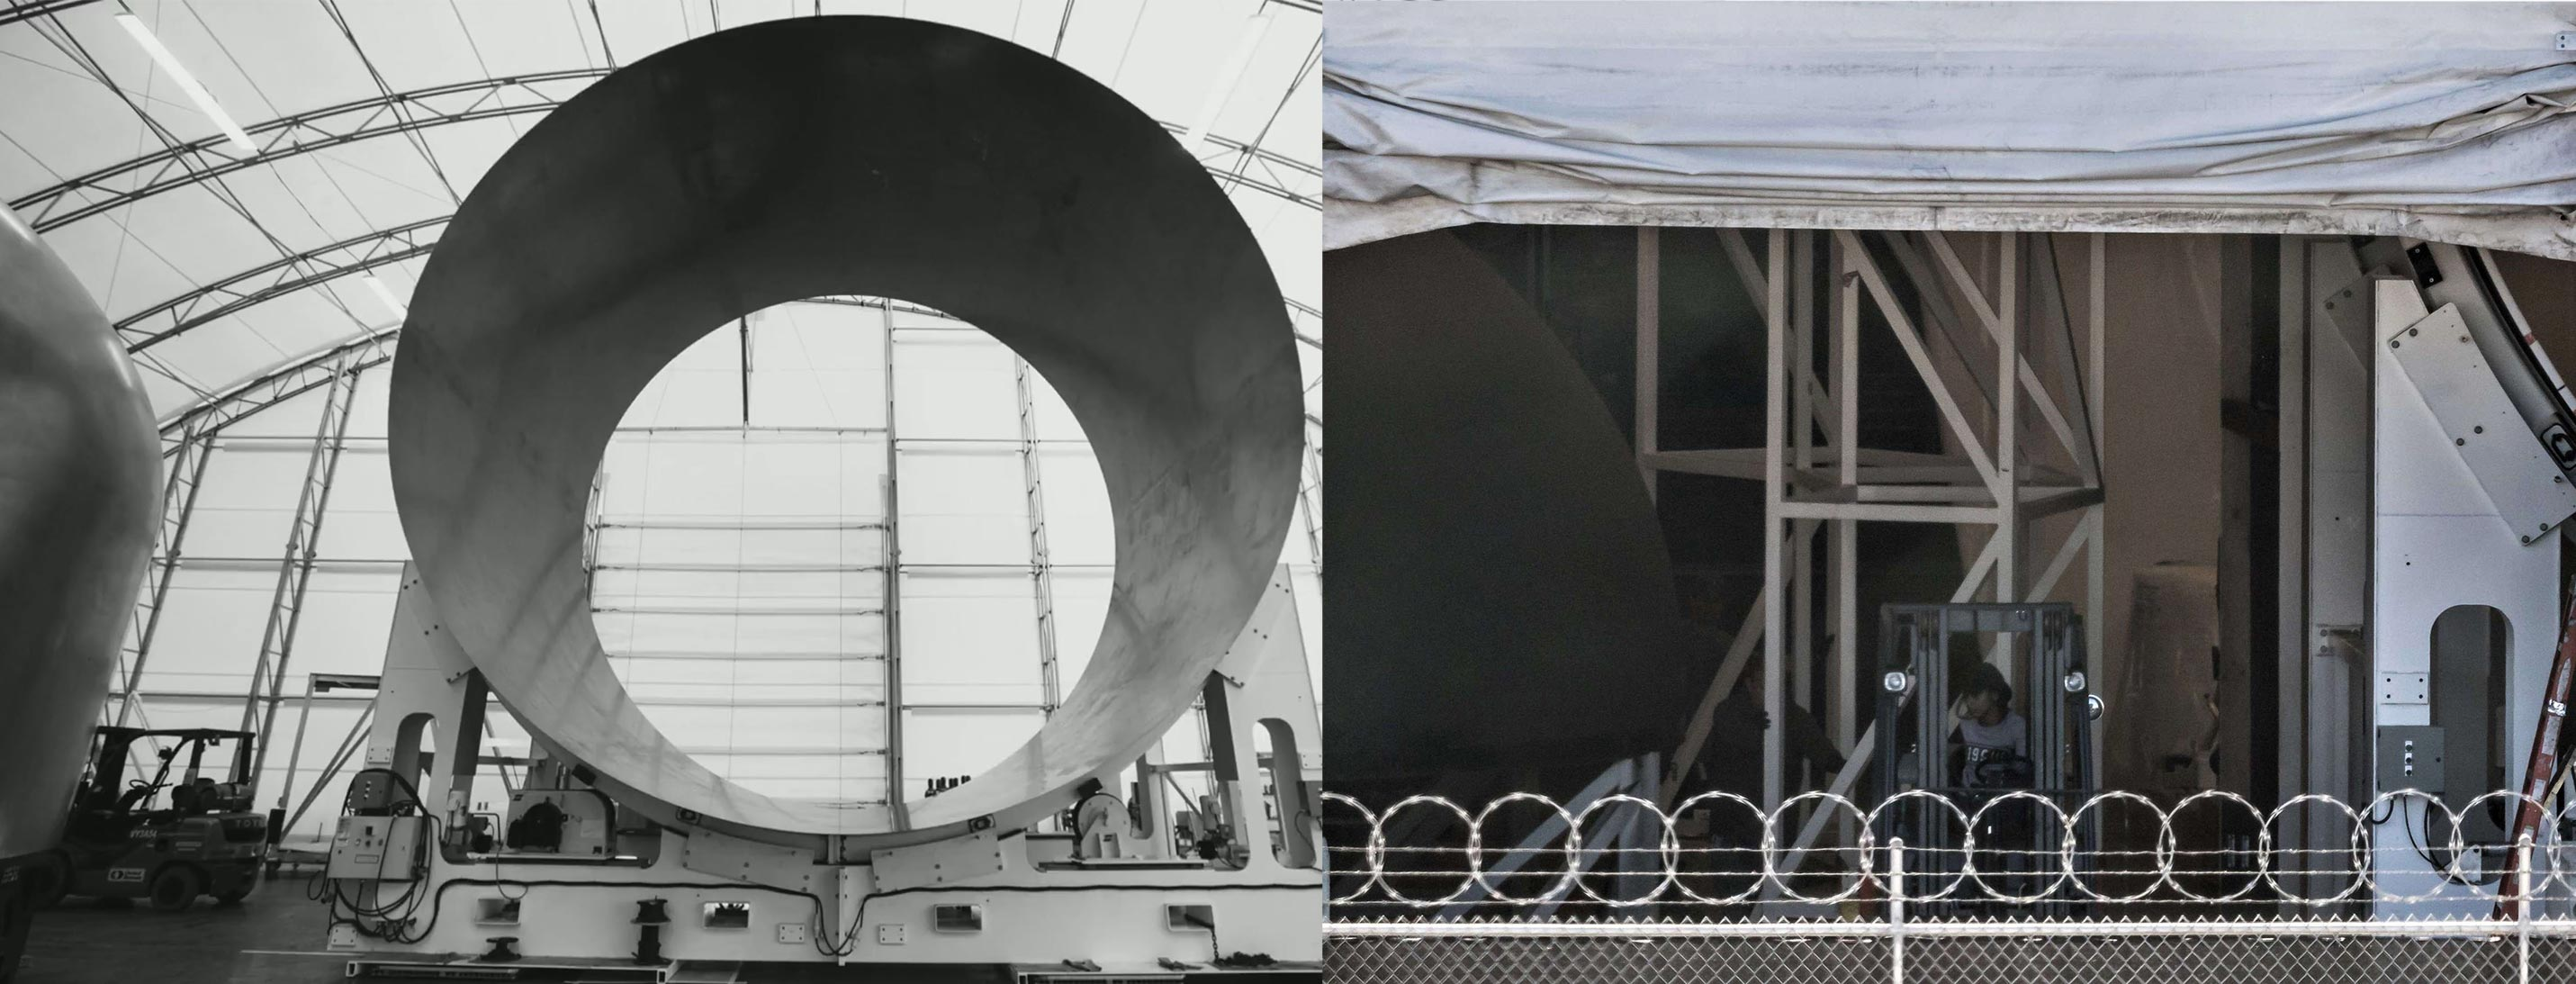 BFR spaceship dome and barrel section (SpaceX+Pauline Acalin)